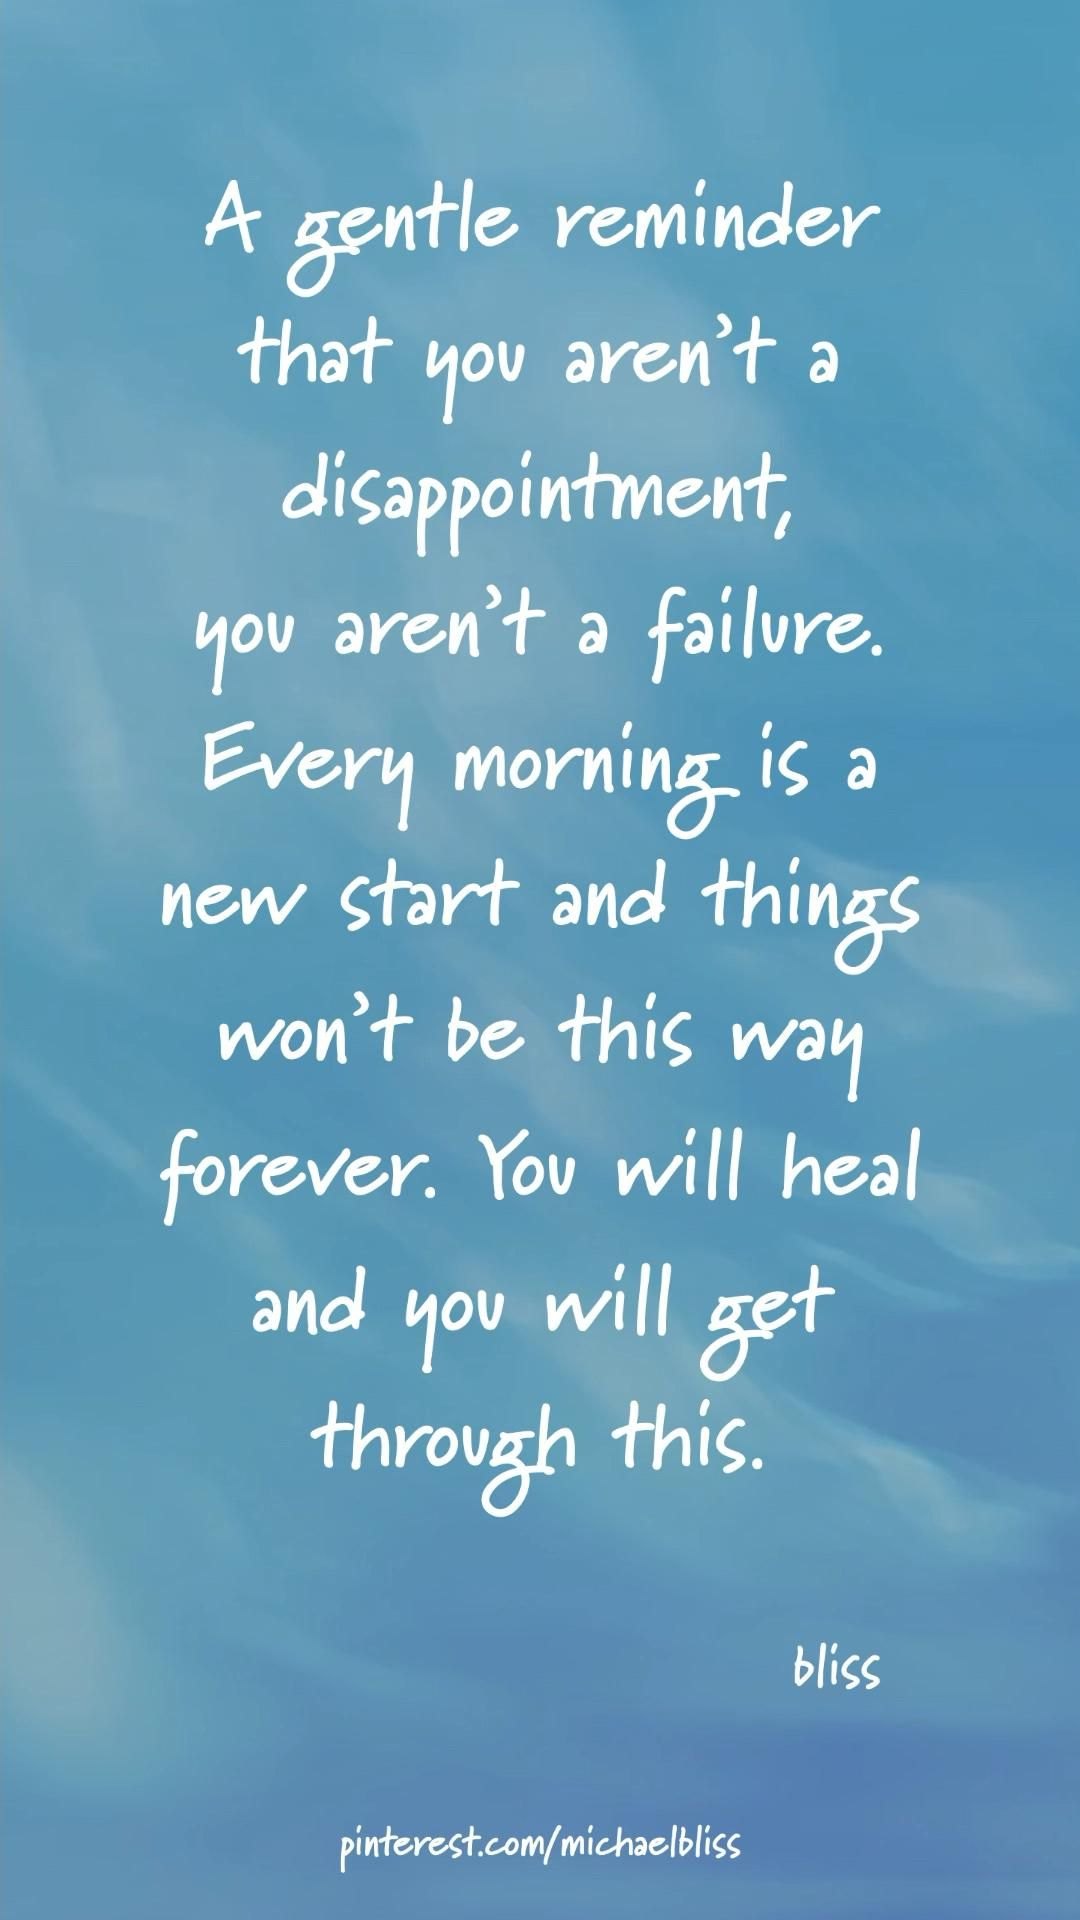 Every morning is a new start, you will heal and you will get through this